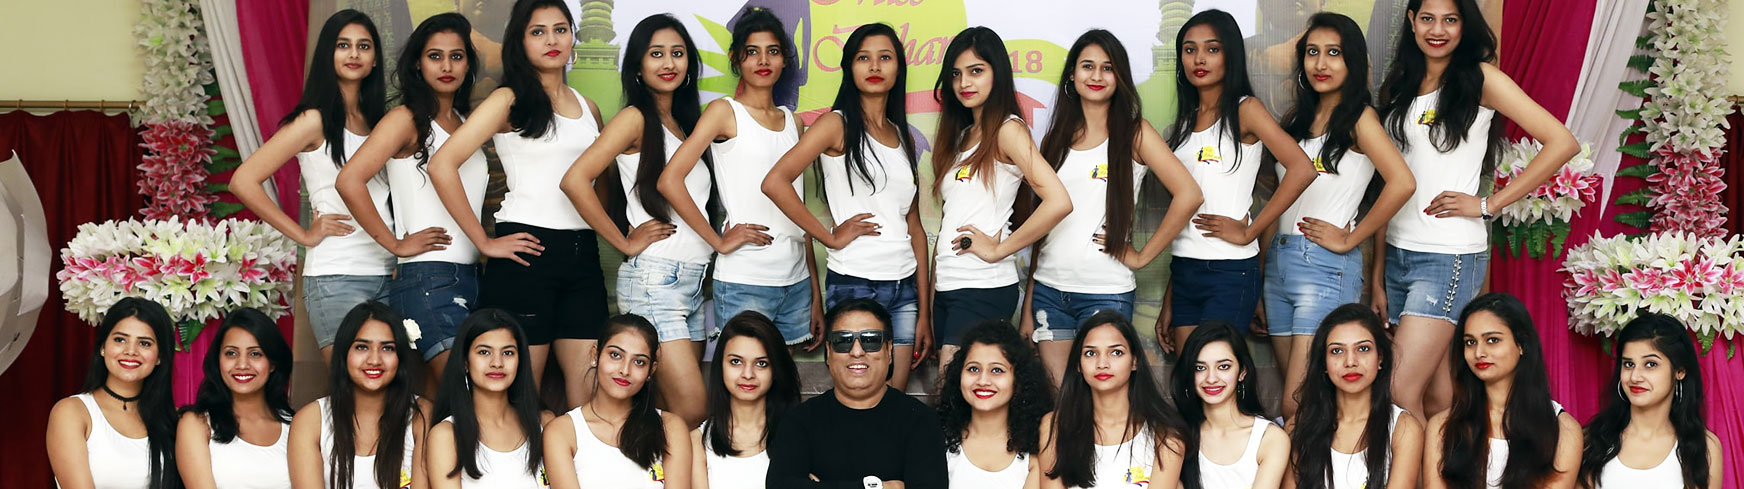 Miss Bihar 2016 -17 Online Registration Start